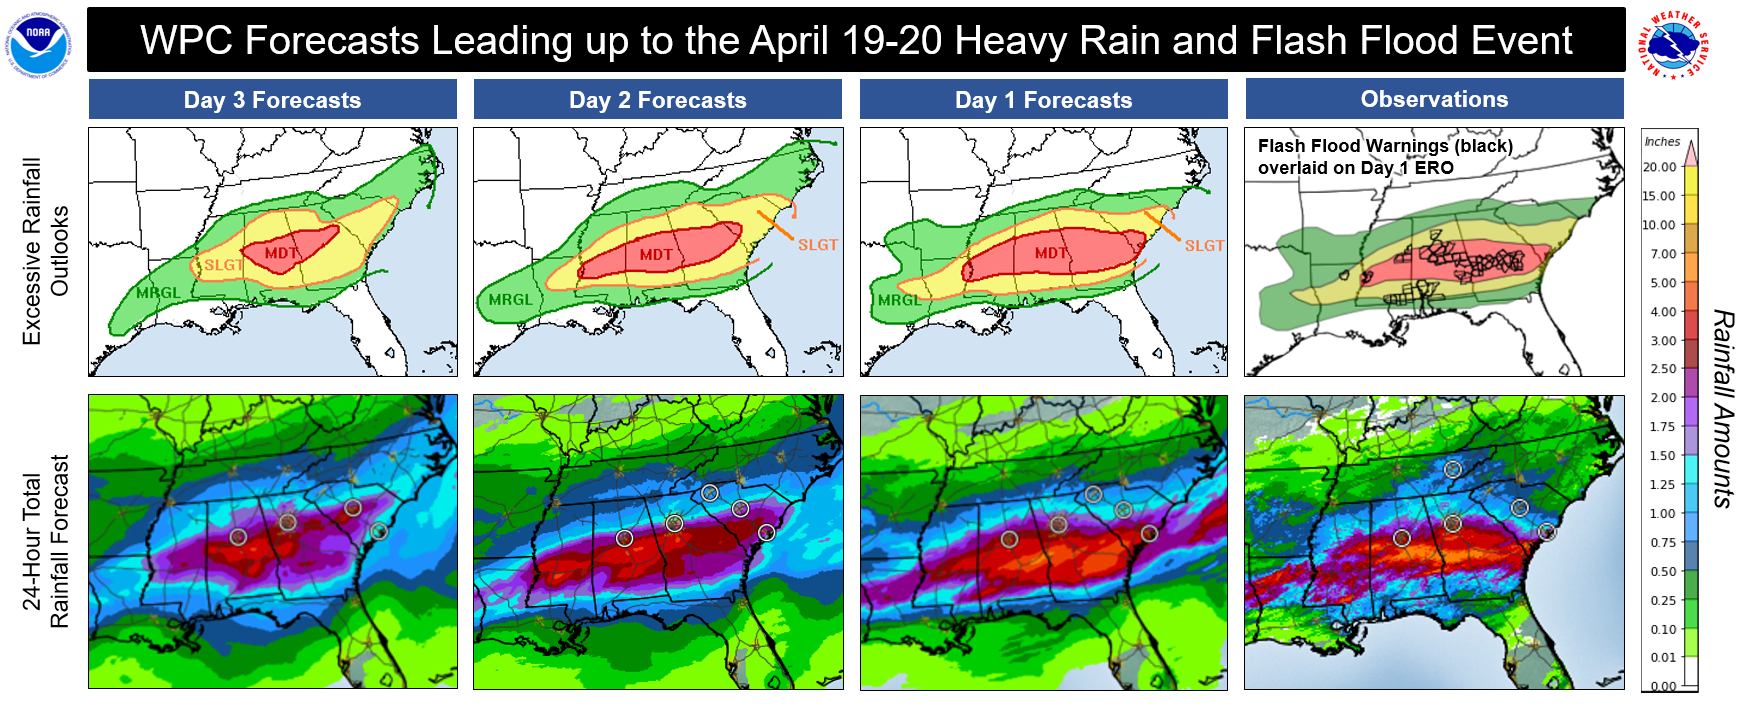 Excessive rainfall and flood outlooks